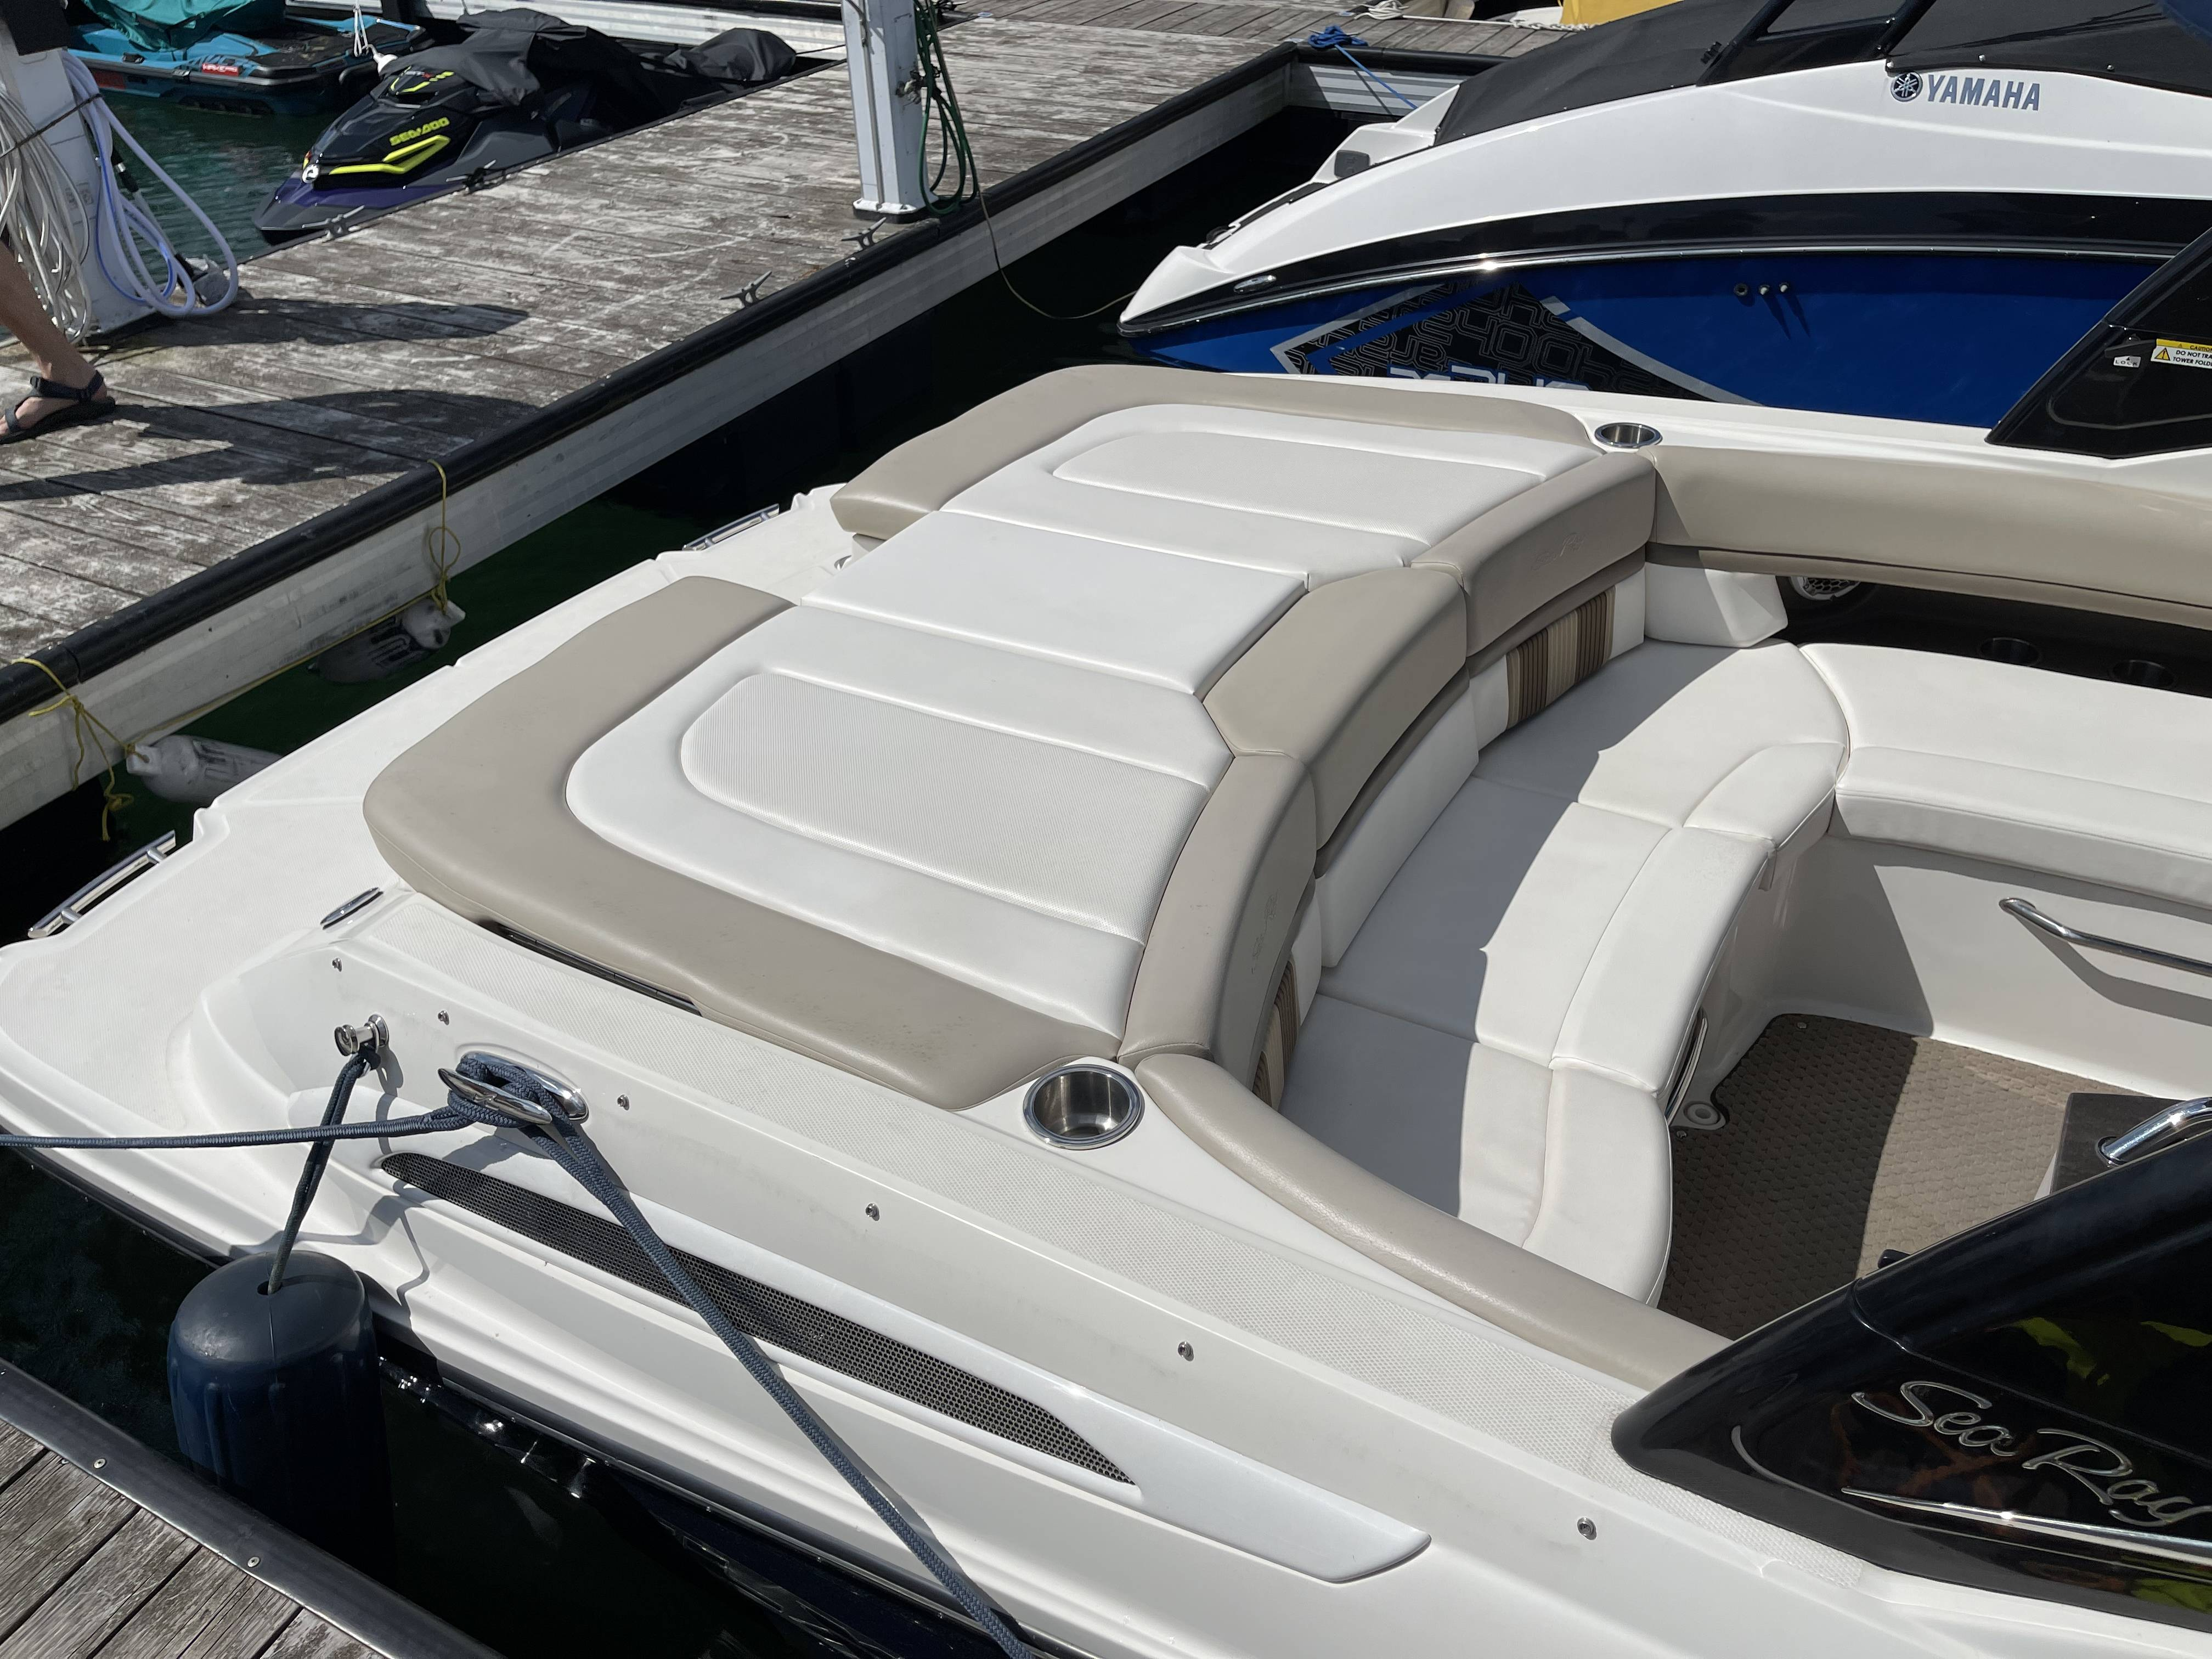 2012 Sea Ray boat for sale, model of the boat is 250 SLX & Image # 29 of 35